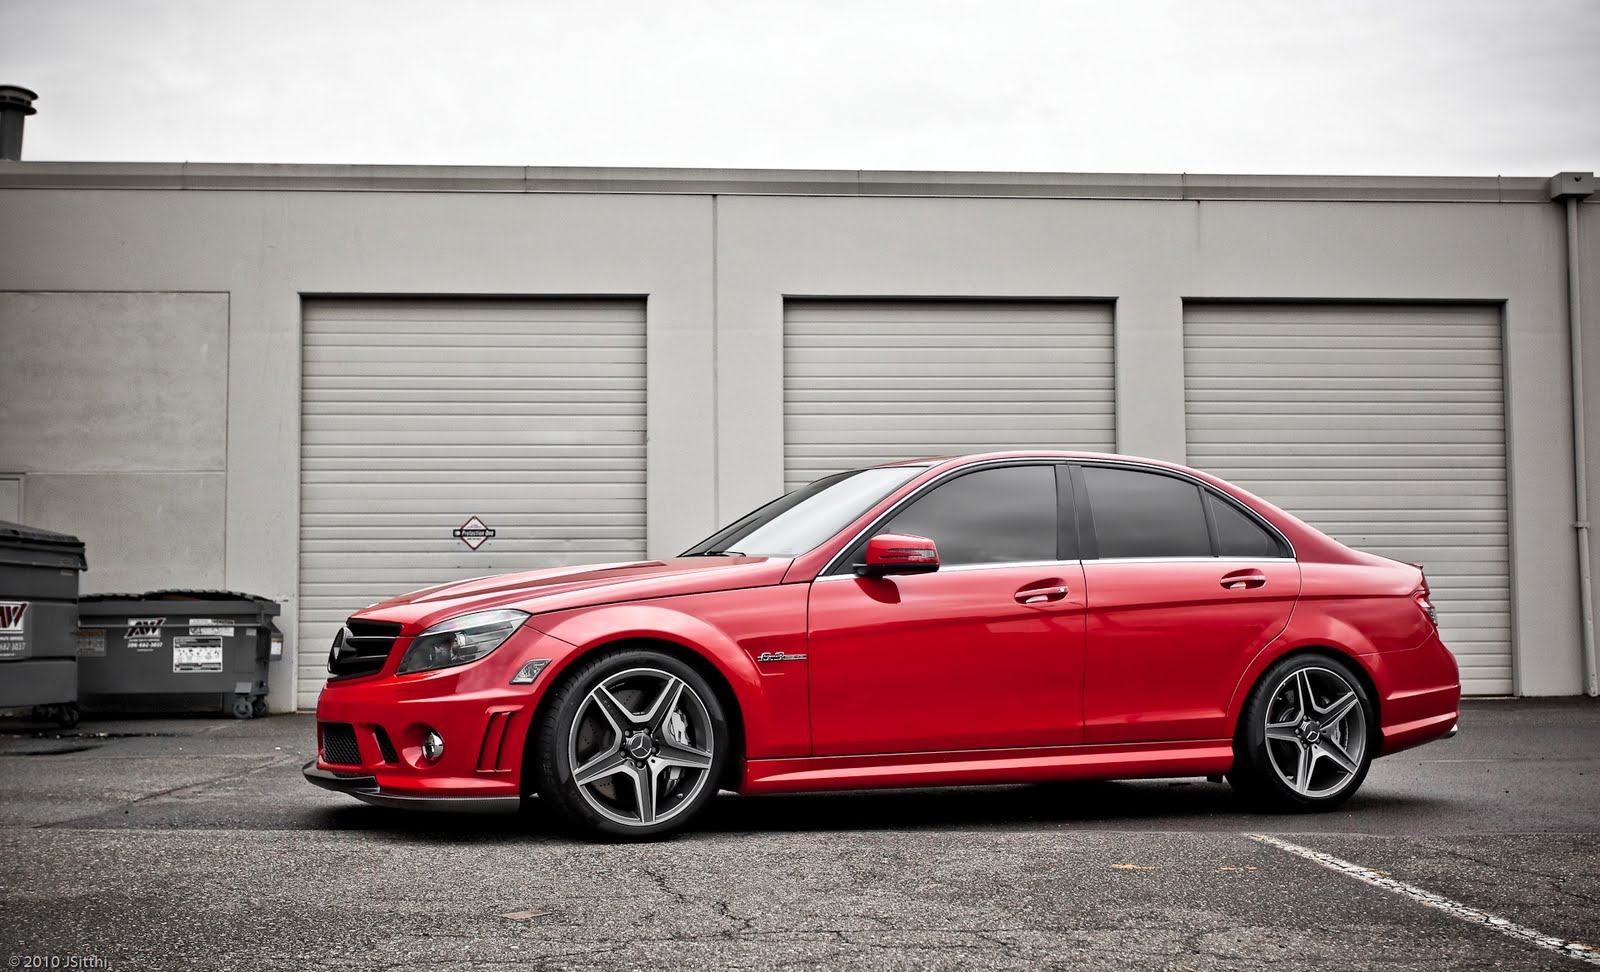 Mercedes Benz C63 Amg W204 Red Benztuning